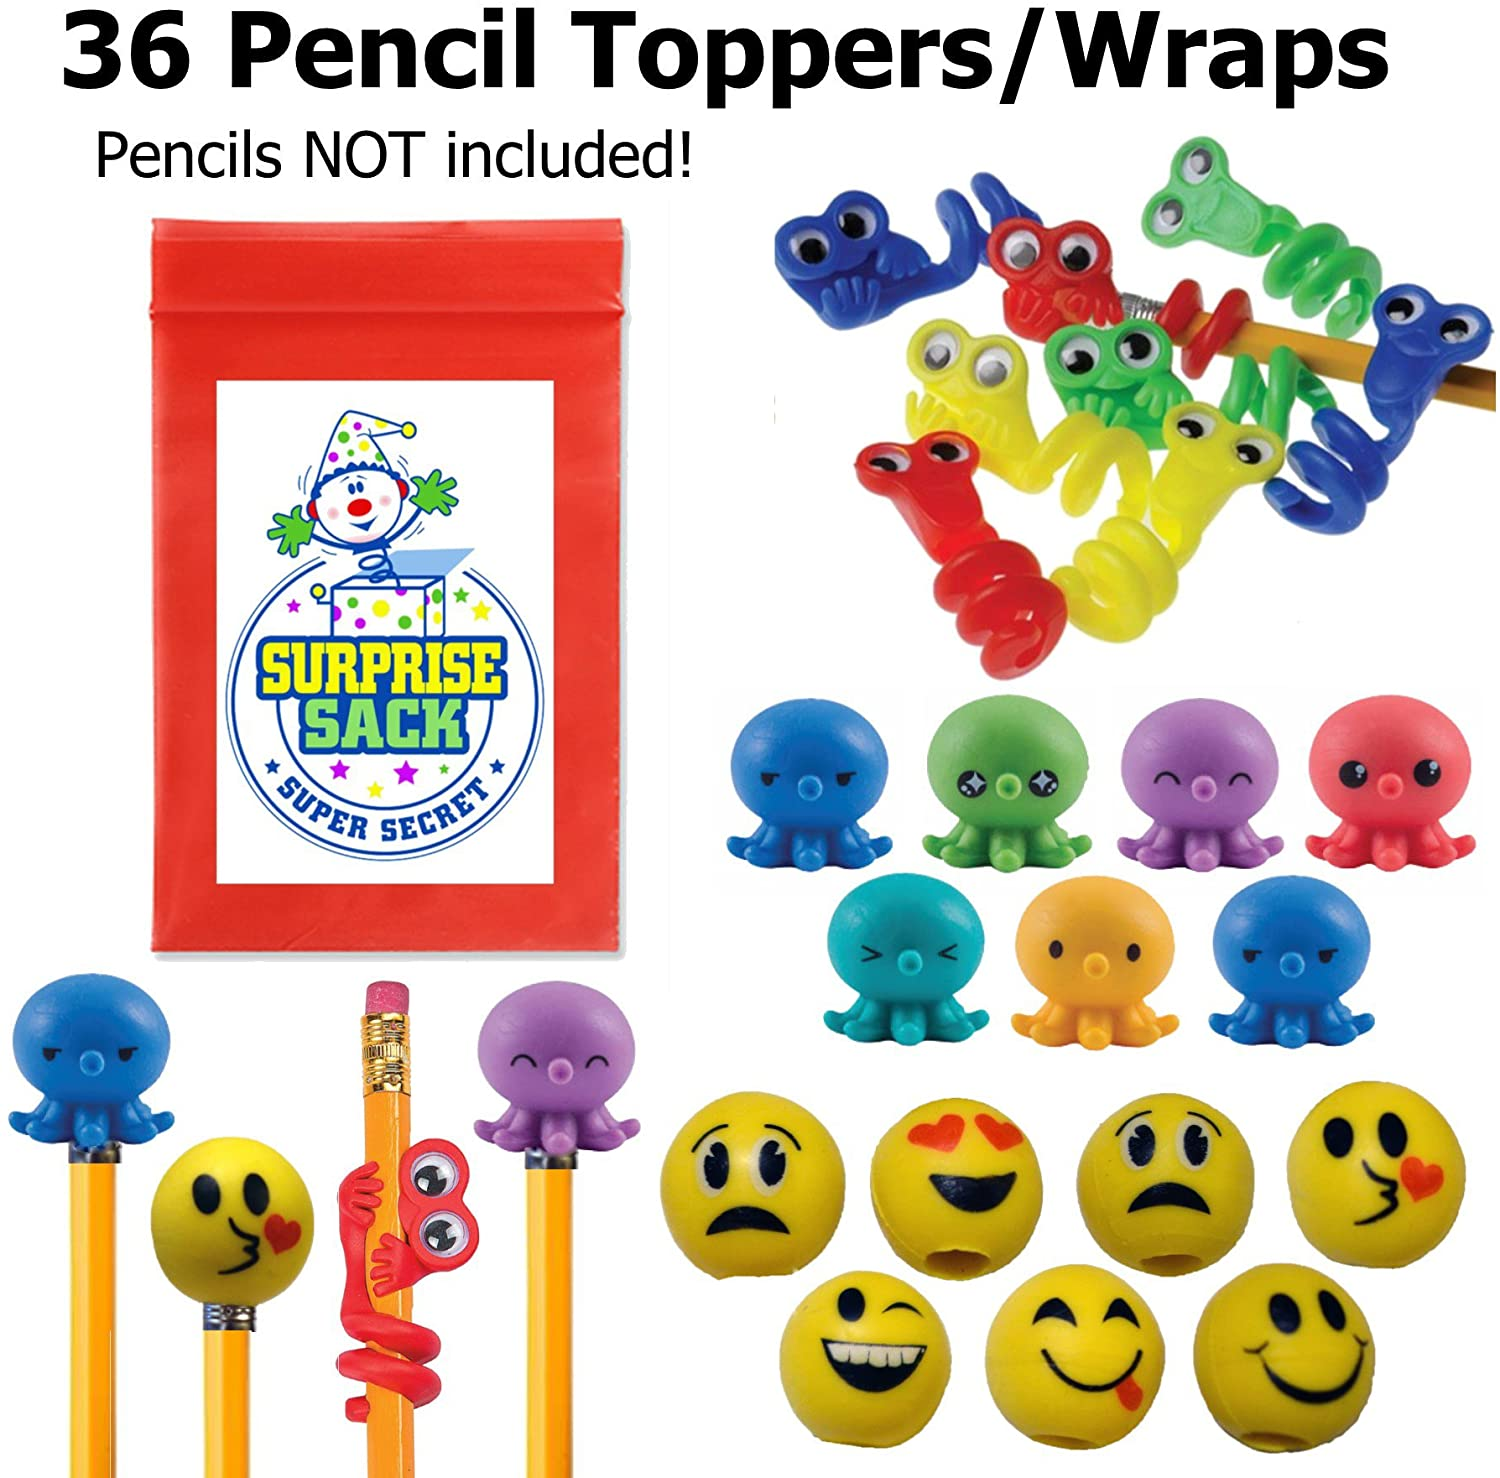 Super Secret Surprise Sack Emoji, Octo Squishies, & Wiggle Eye Pencil Topper Pack (36 Pc) with 1